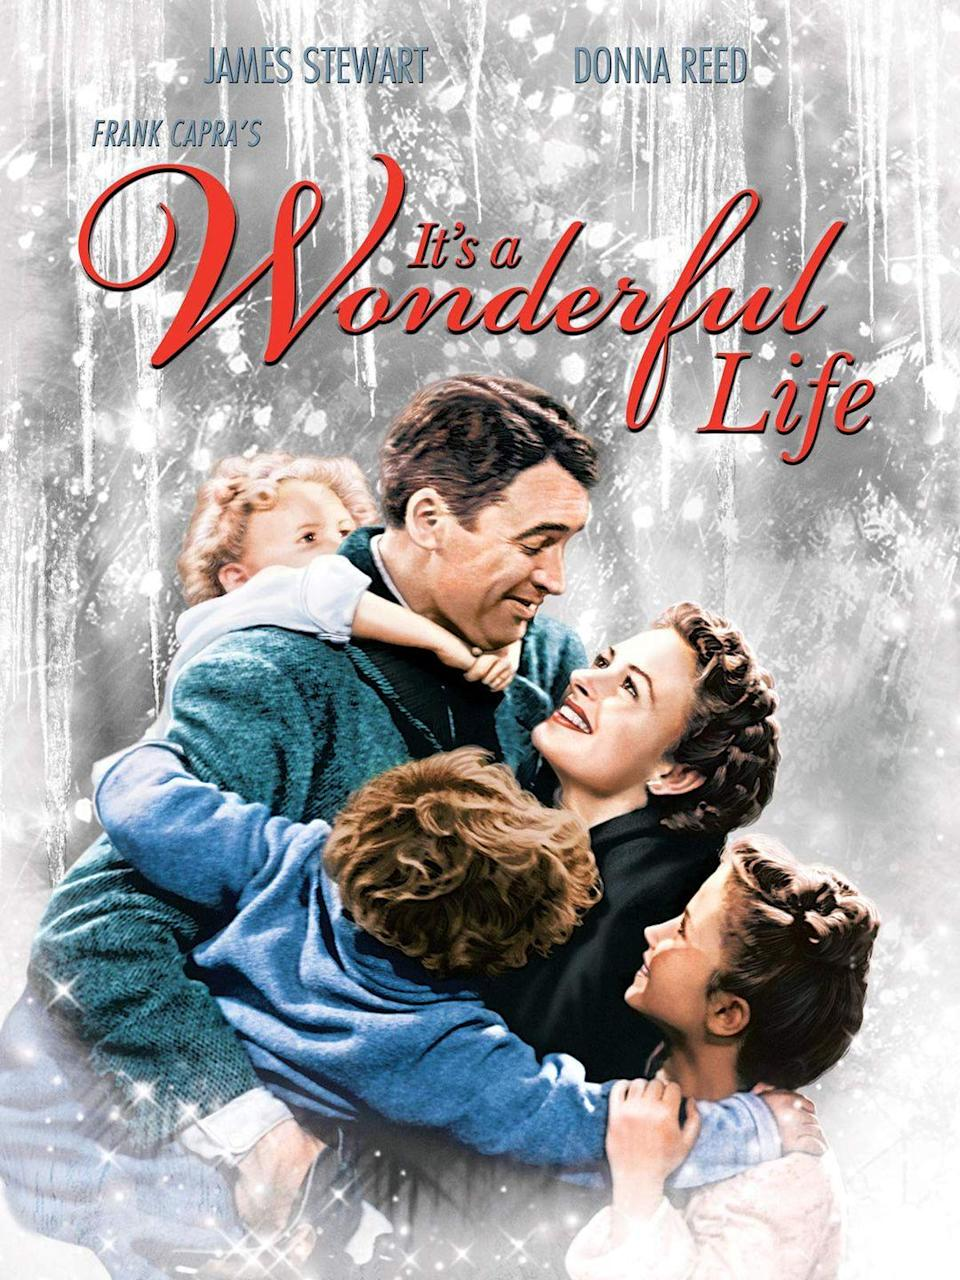 """<p>This 1946 Frank Capra film isn't just one of the best Christmas movies of all time — it's one of the best movies in general. <em>It's a Wonderful Life</em> was nominated for six Academy Awards and ranks #11 on the American Film Institute's original list of the <a href=""""https://www.afi.com/afis-100-years-100-movies/"""" rel=""""nofollow noopener"""" target=""""_blank"""" data-ylk=""""slk:100 Greatest American Films of All Time"""" class=""""link rapid-noclick-resp"""">100 Greatest American Films of All Time</a>.</p><p><a class=""""link rapid-noclick-resp"""" href=""""https://www.amazon.com/Its-Wonderful-Life-James-Stewart/dp/B07JNJQTSX/?tag=syn-yahoo-20&ascsubtag=%5Bartid%7C10055.g.1315%5Bsrc%7Cyahoo-us"""" rel=""""nofollow noopener"""" target=""""_blank"""" data-ylk=""""slk:WATCH NOW"""">WATCH NOW</a></p>"""